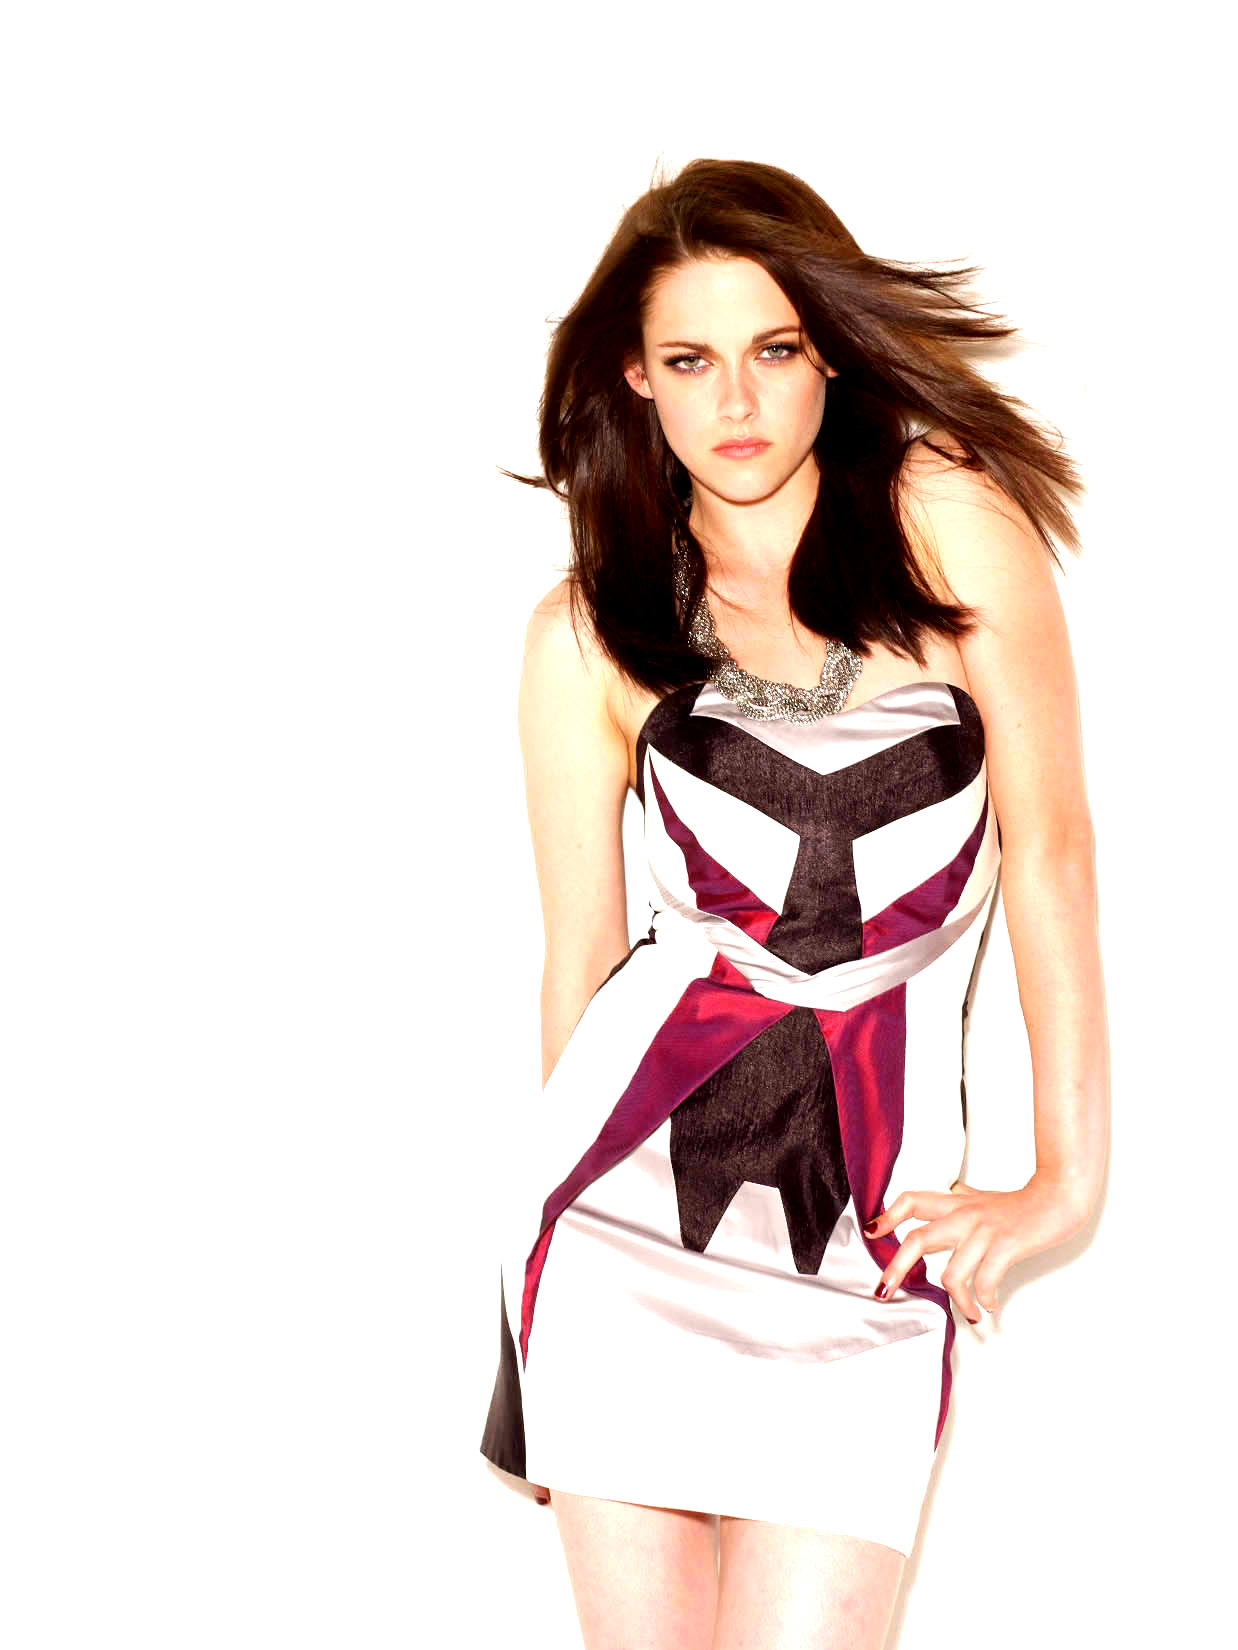 kristen-stewart-sexy-wallpapers